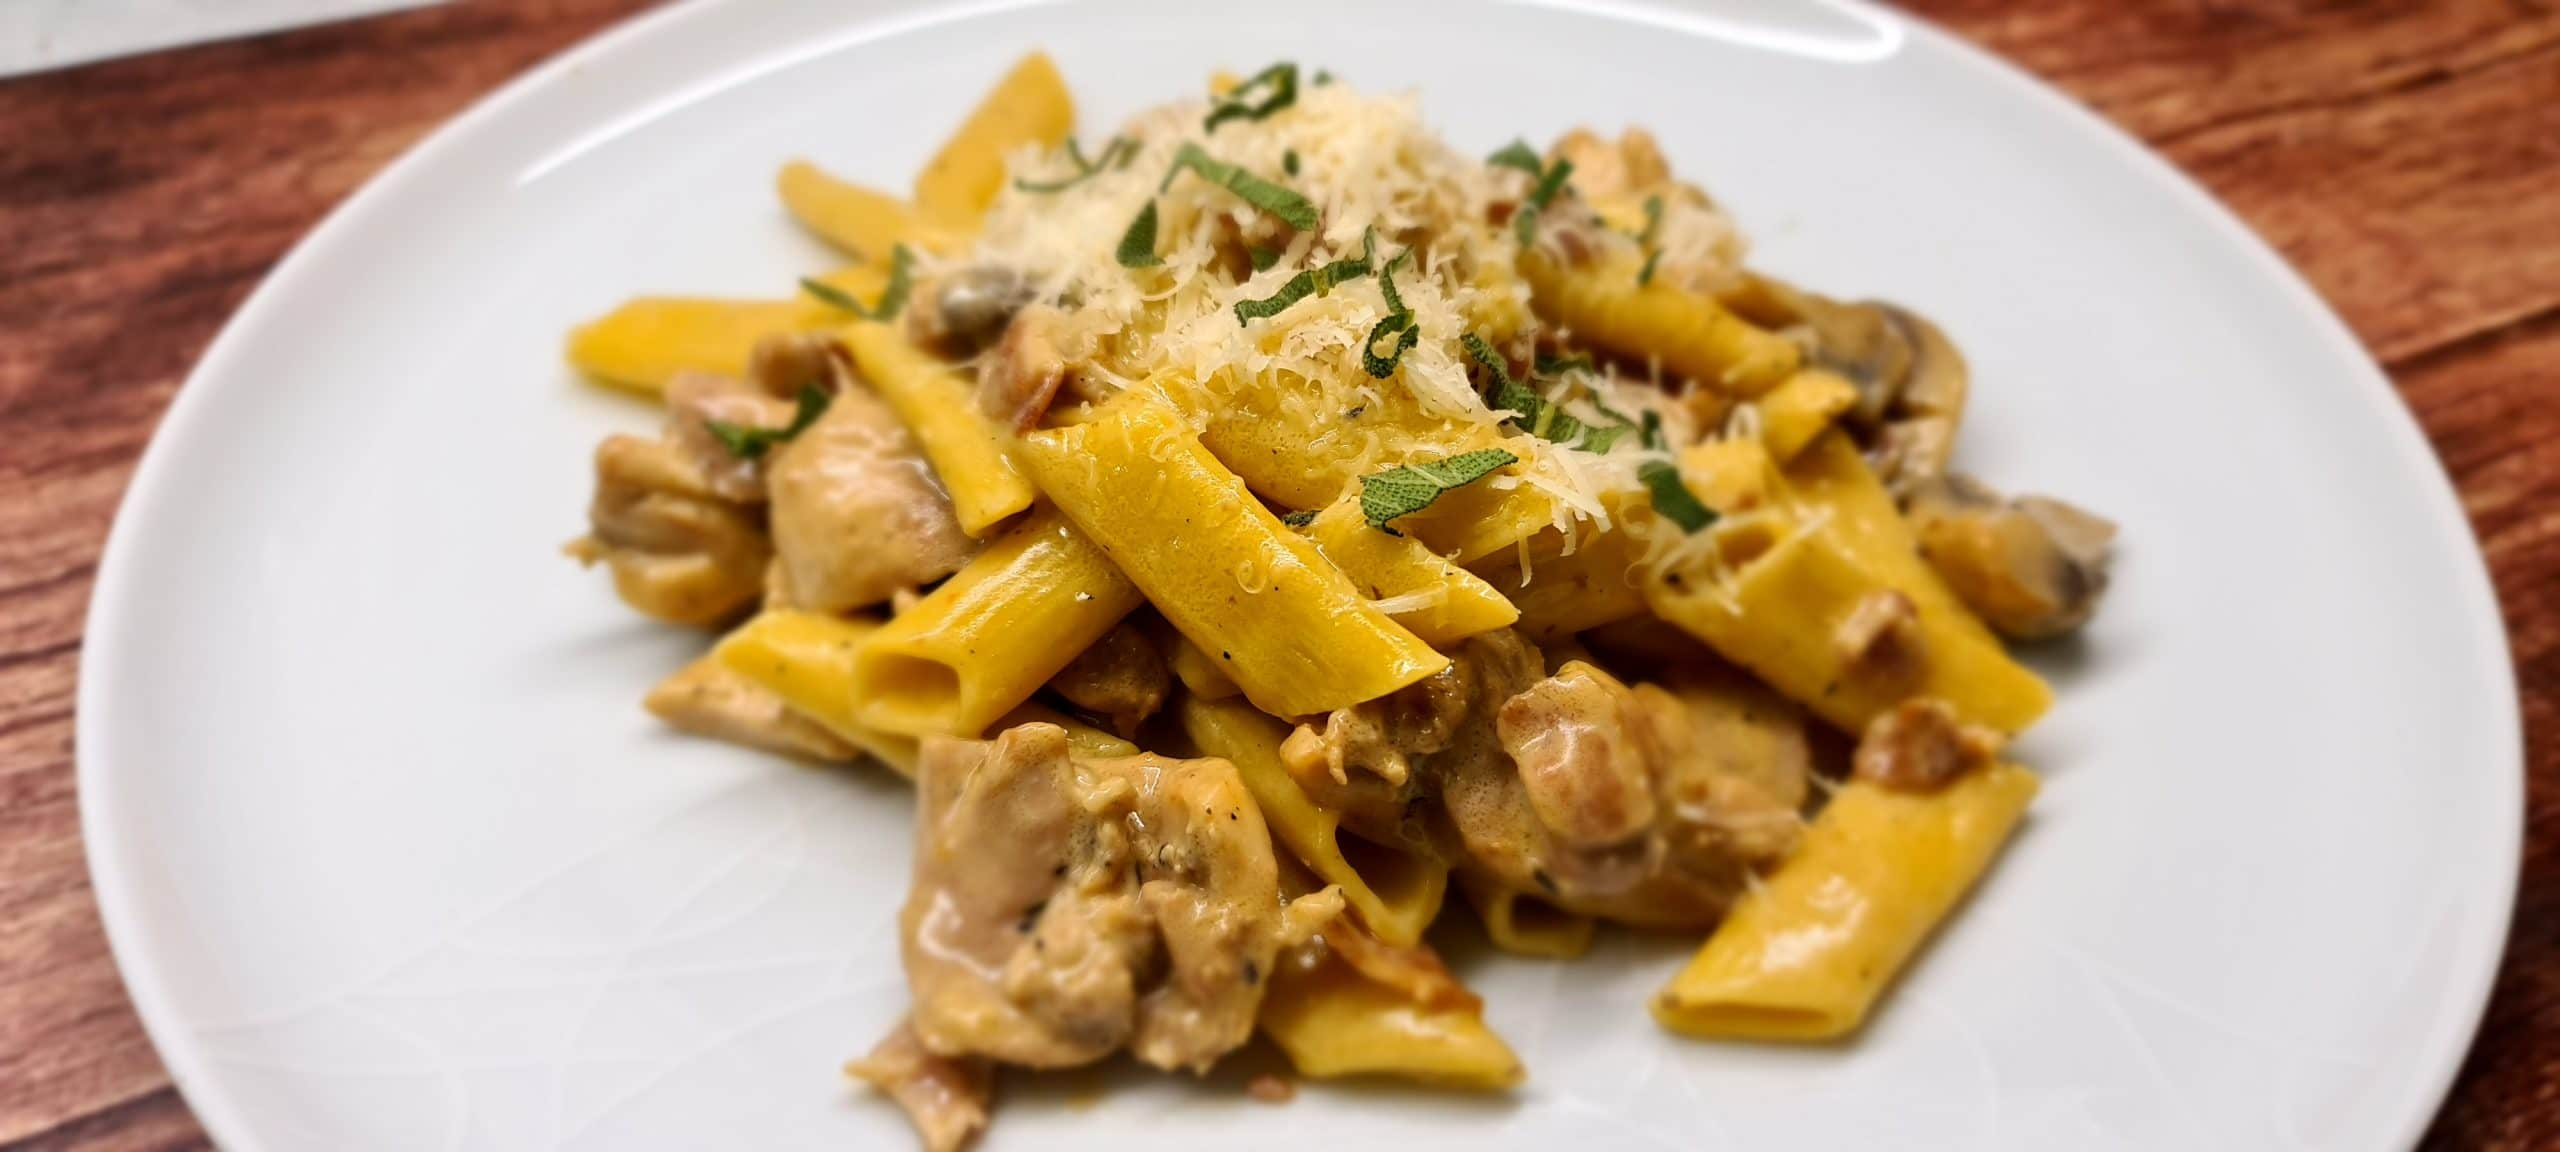 You are currently viewing Creamy Chicken, Bacon and Mushroom Pasta